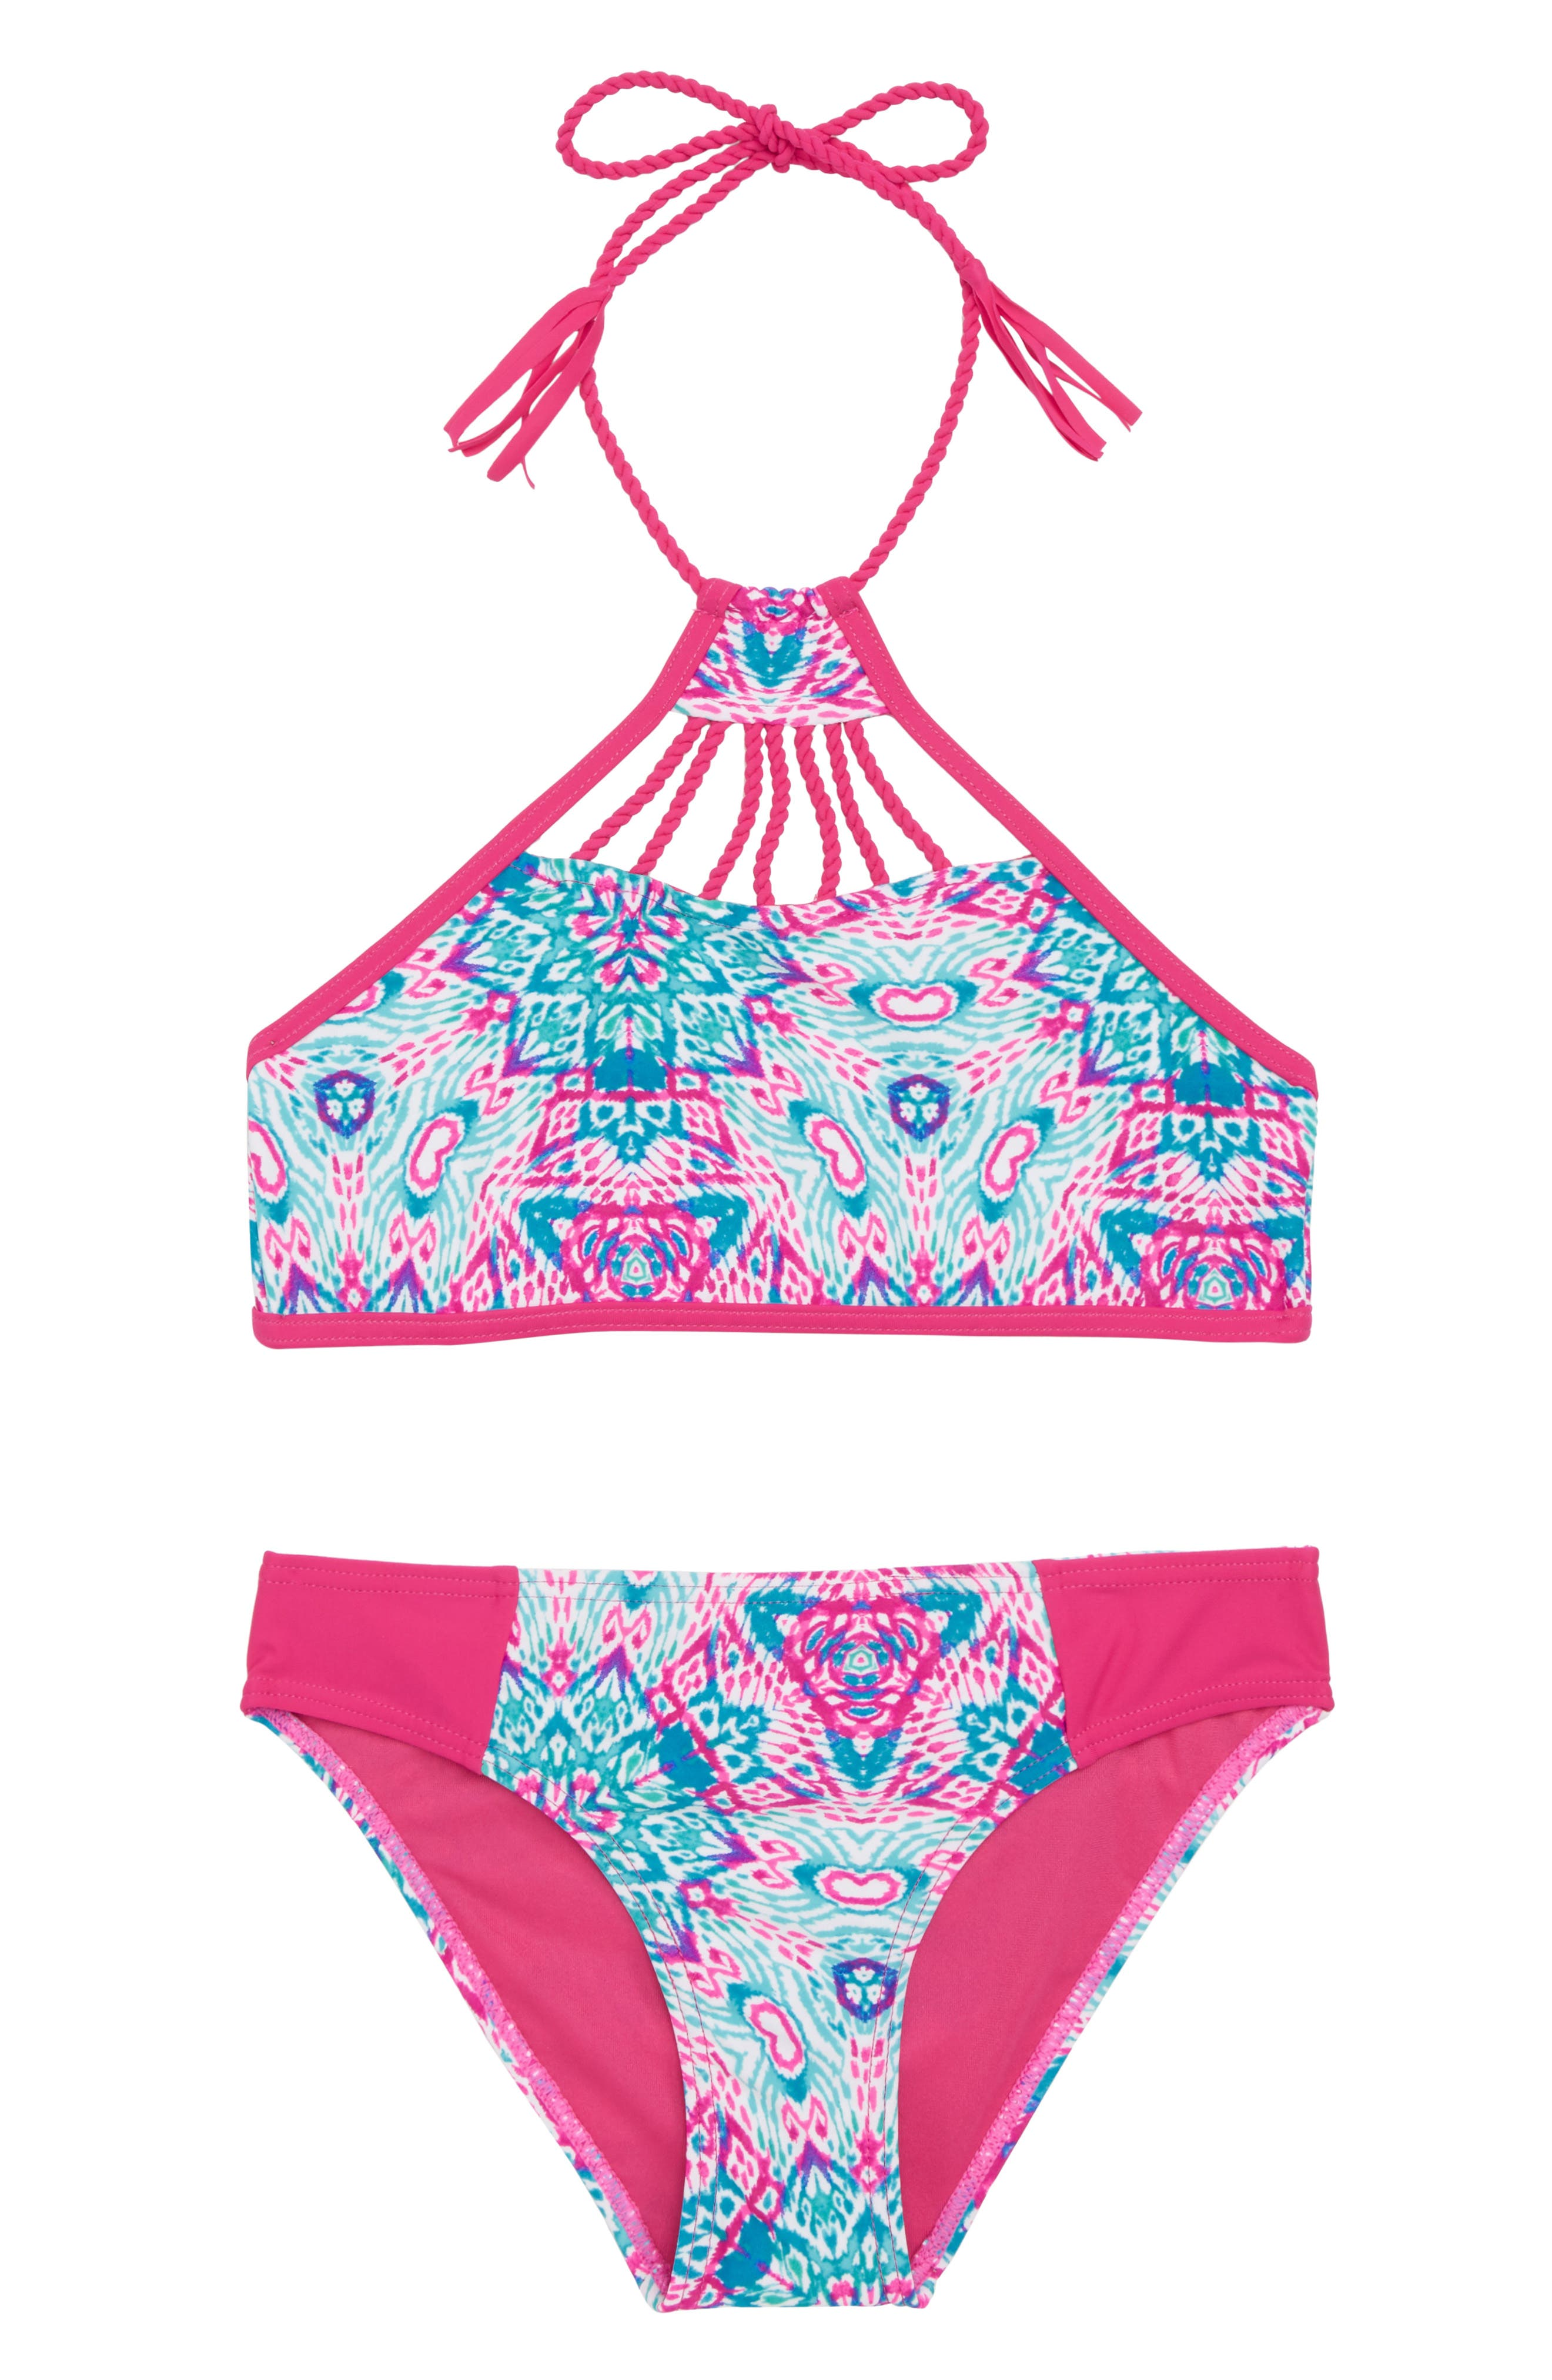 Braided Detail Two-Piece Swimsuit,                         Main,                         color, Pink